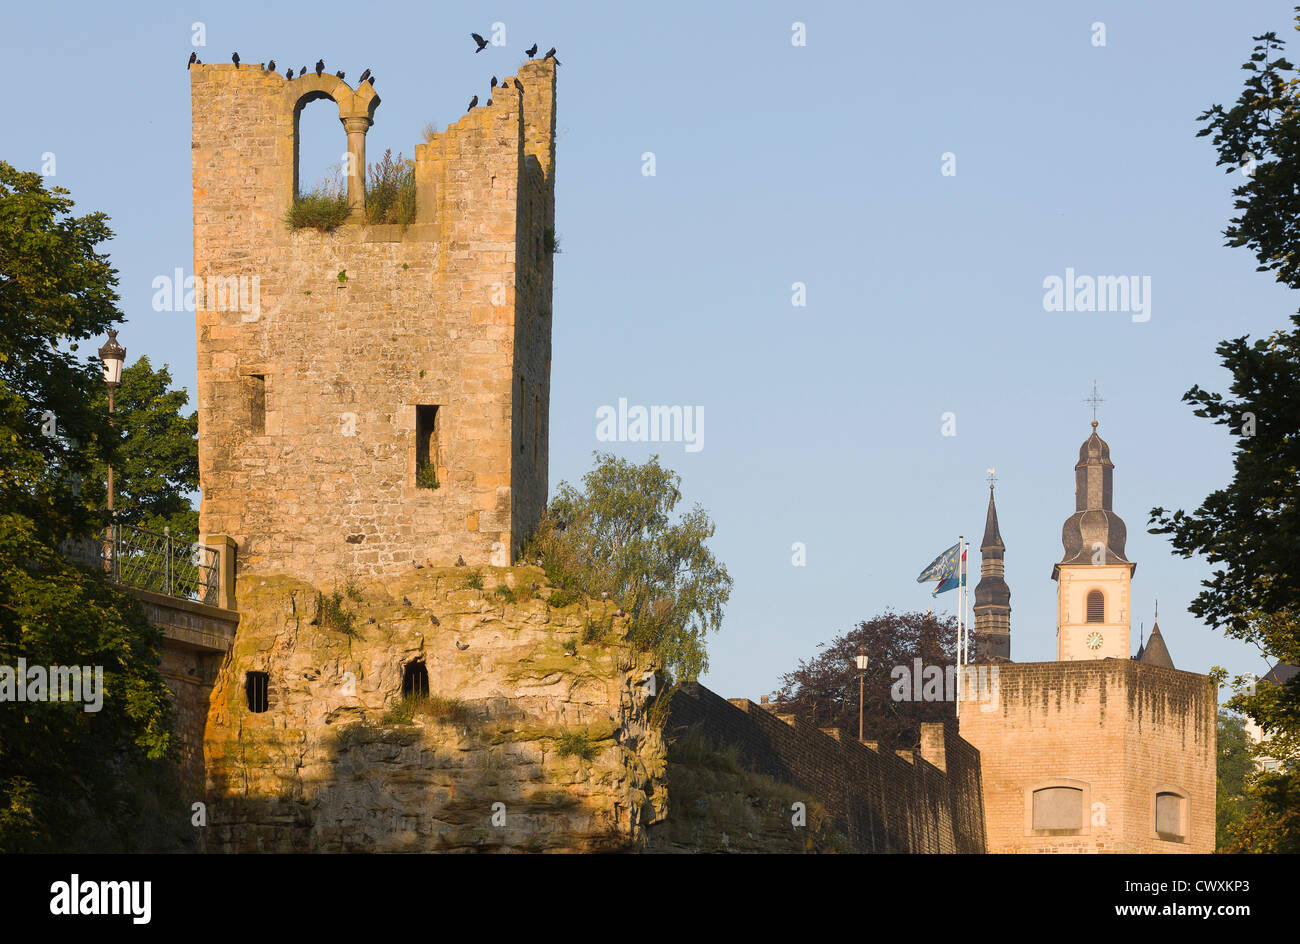 Bock Rock with the Huelen Zand (Hollow Tooth) and Saint Michael's church. - Stock Image